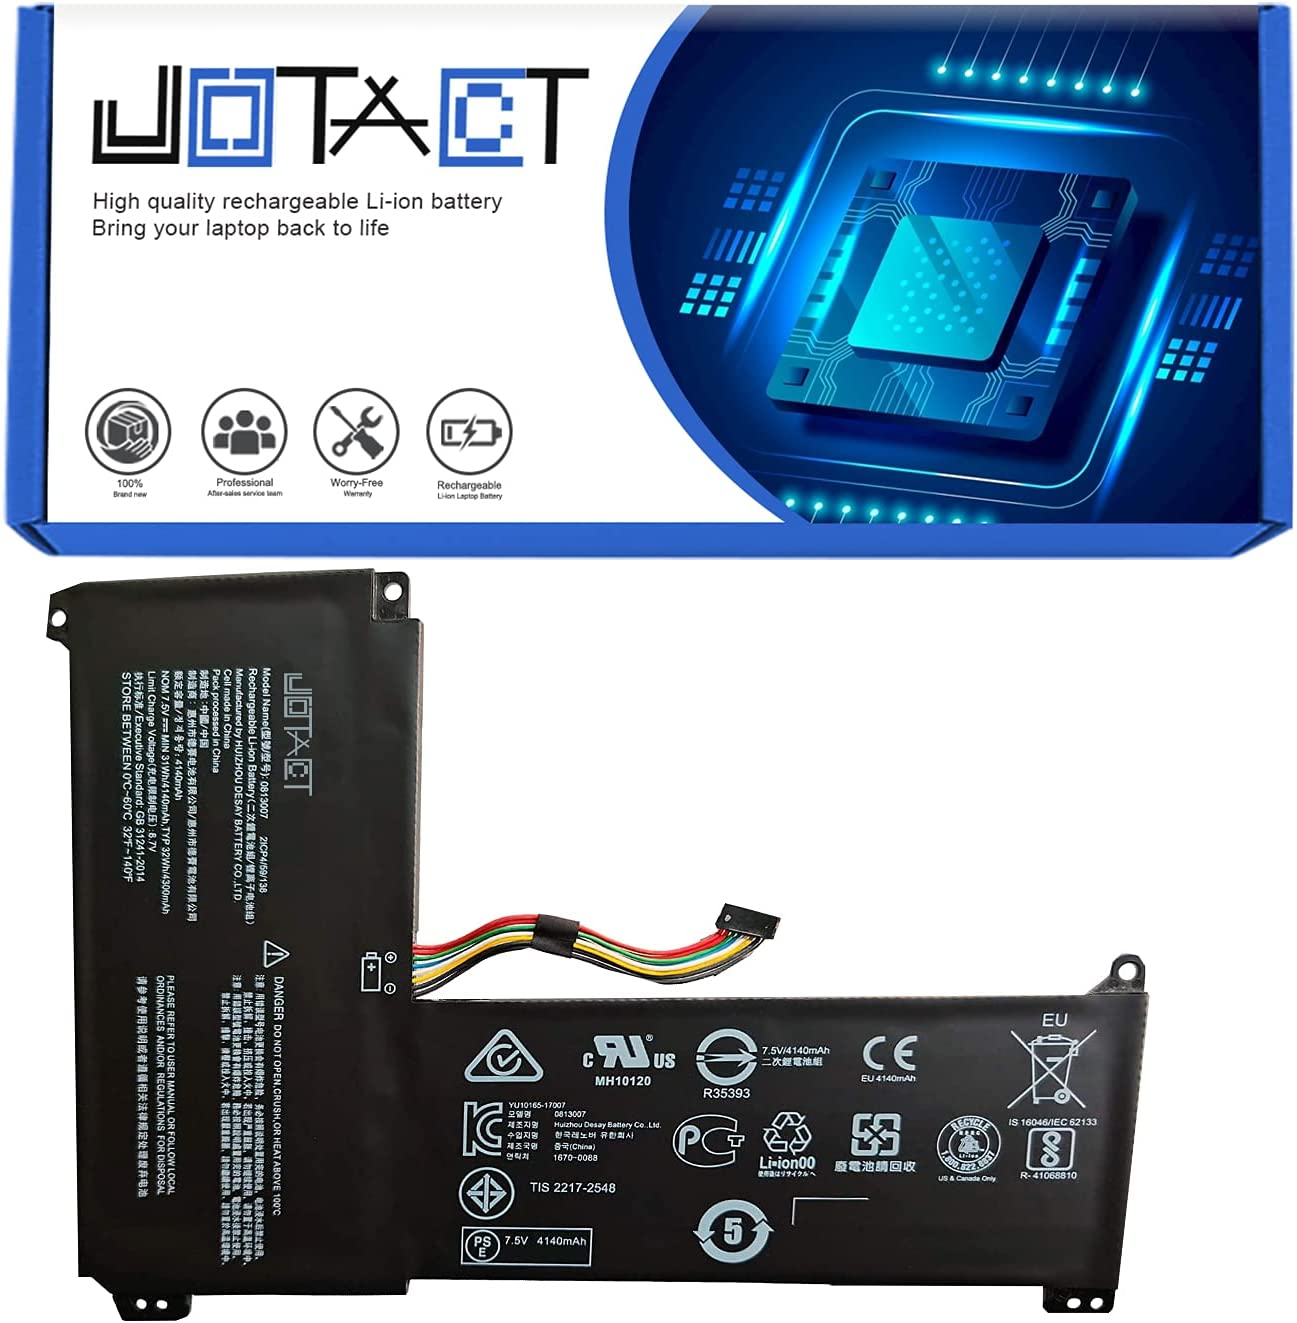 Ranking Safety and trust TOP19 JOTACT 0813007(7.5V 31Wh 4140mAh Batter Laptop 2-Cell)